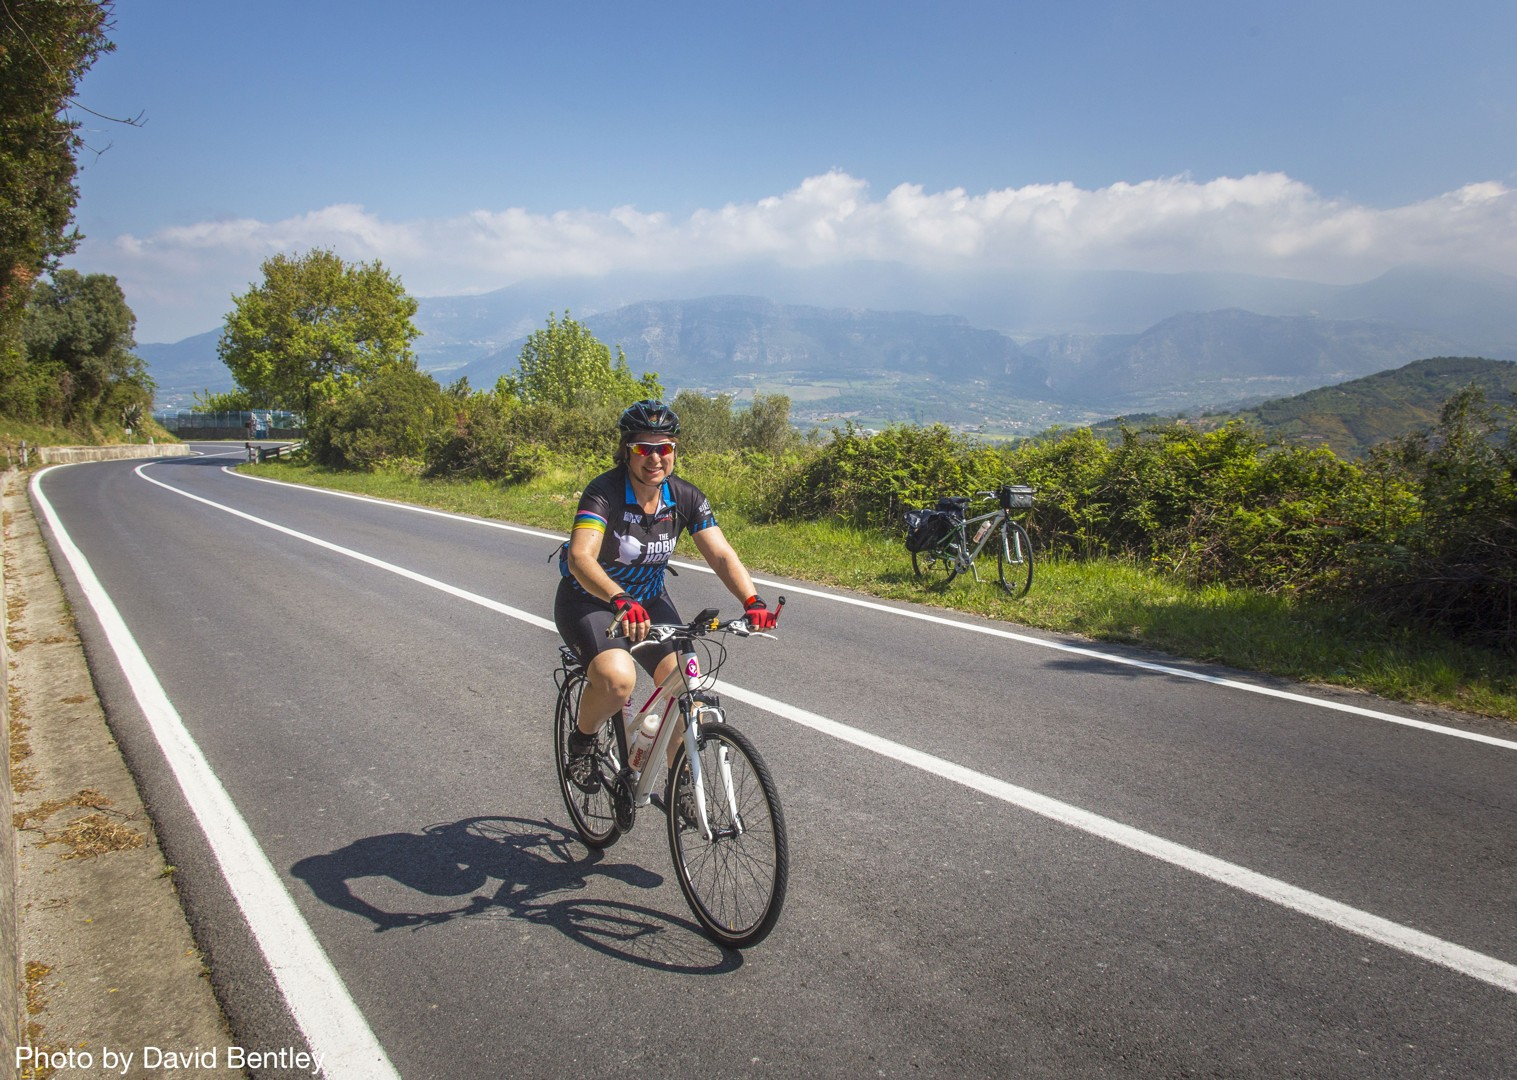 self-guided-cycling-holiday-in-italy-amalfi-coast-and-cilento-explore-at-your-own-pace.jpg - Italy - Cilento and The Amalfi Coast - Self-Guided Leisure Cycling Holiday - Leisure Cycling